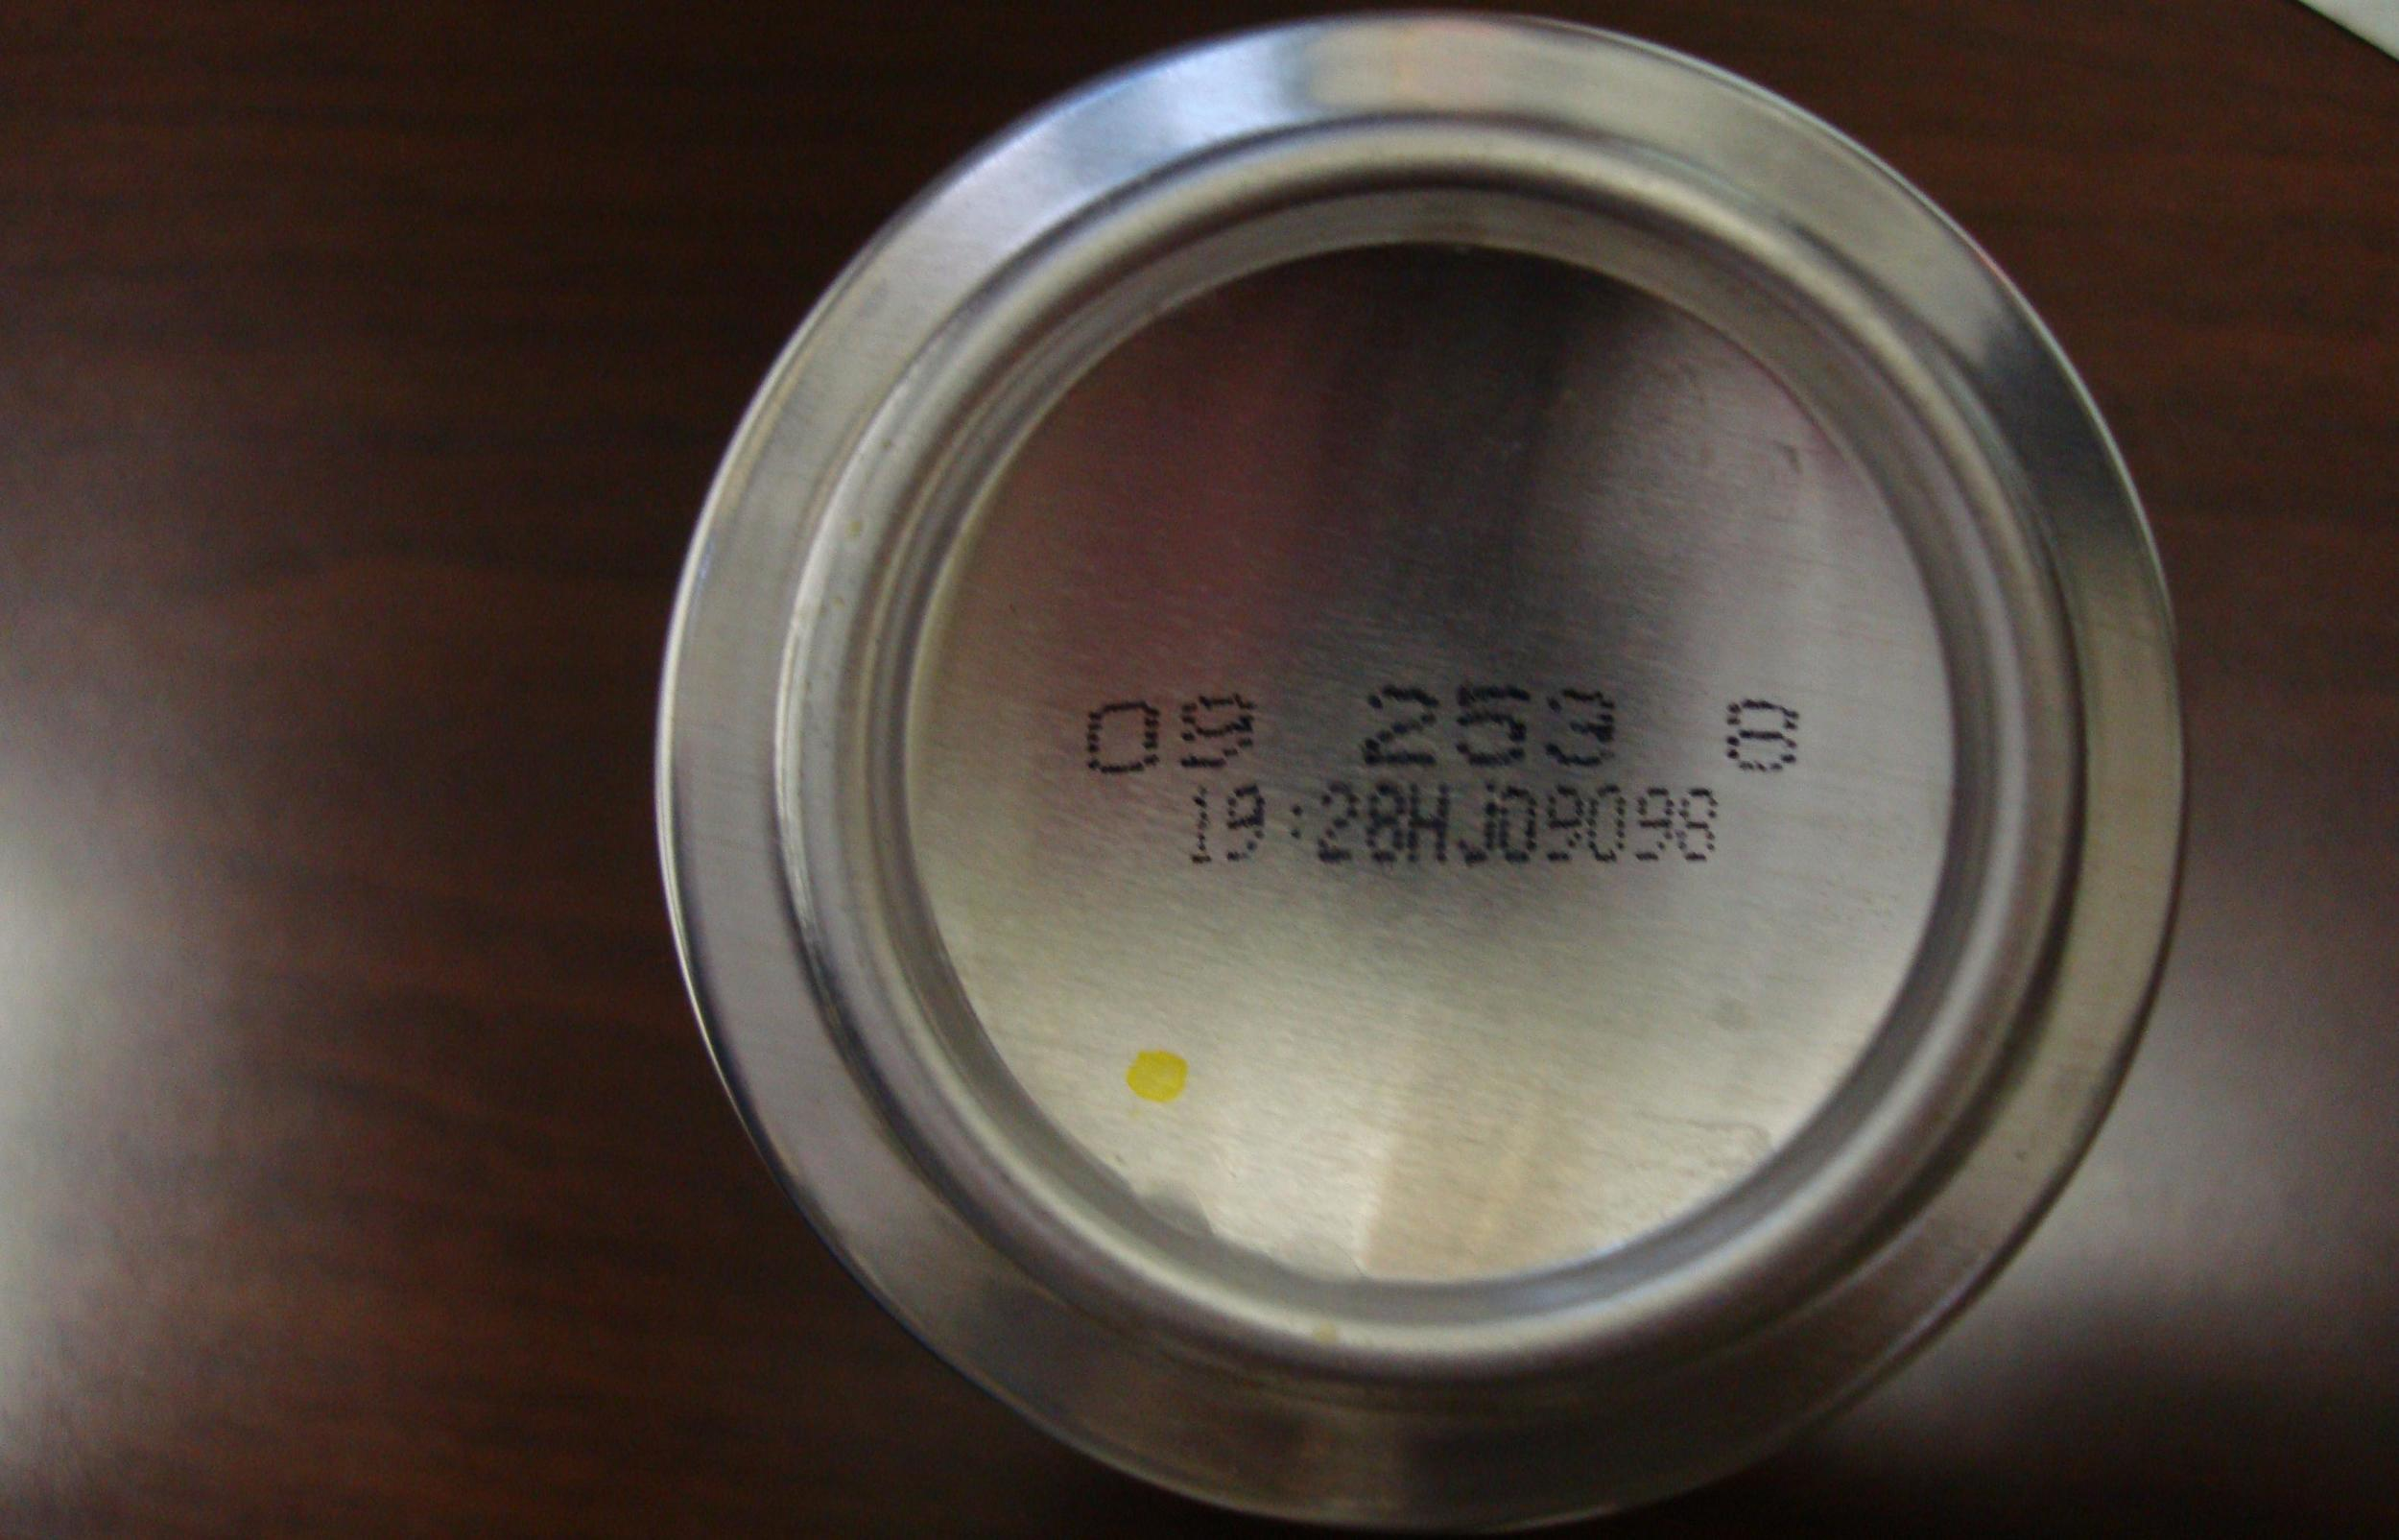 How To Read Soda Sell By Dates The Coffee Refreshment Experts